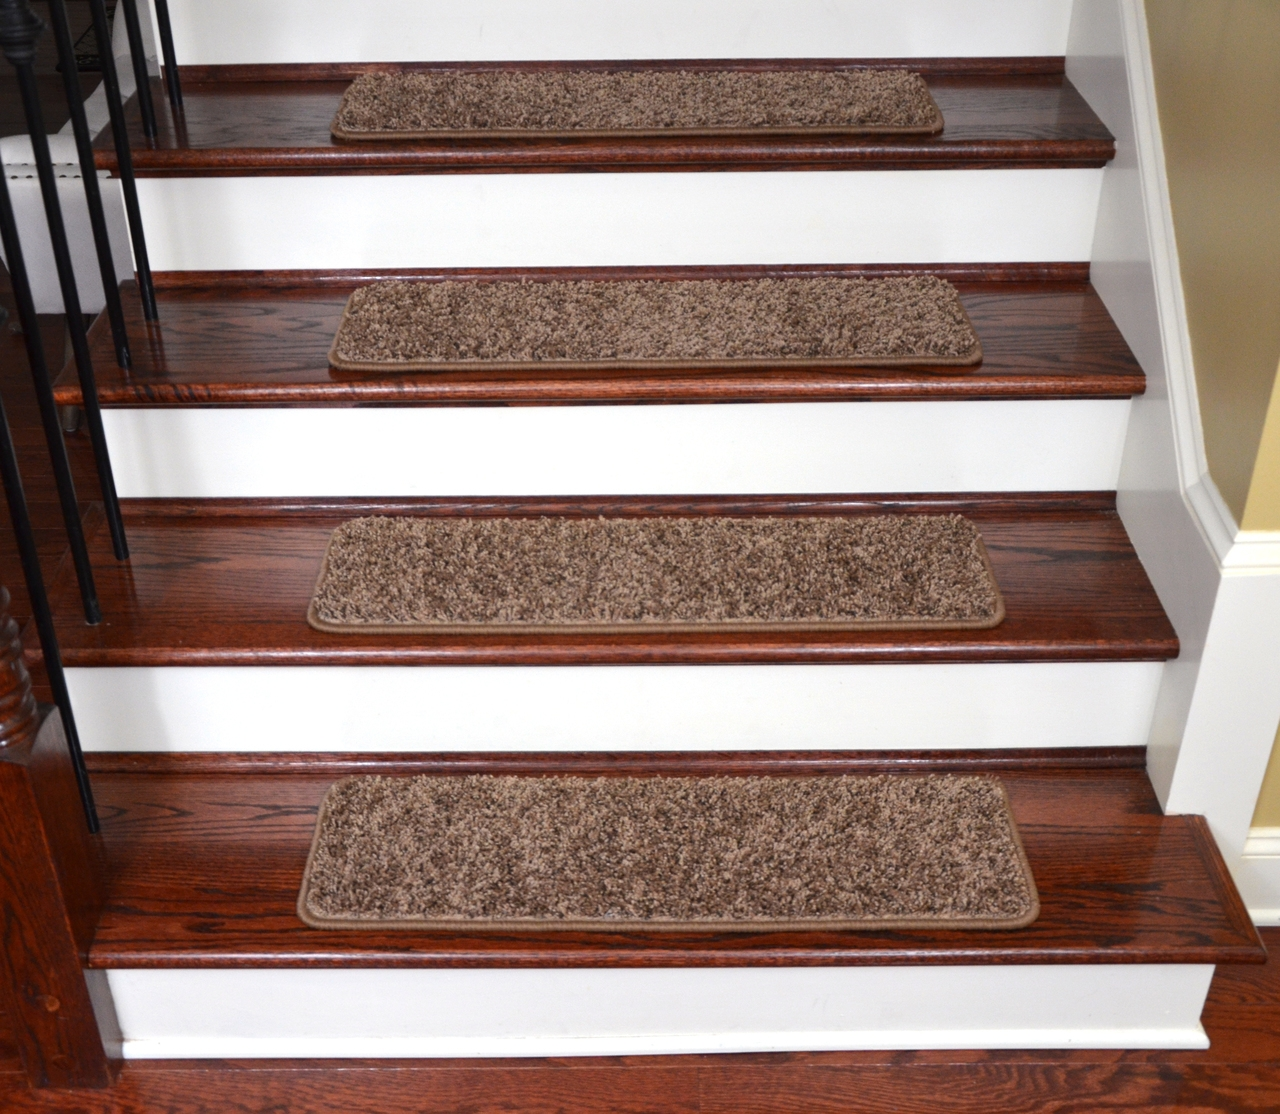 Dean Premium Stair Gripper Tape Free Non Slip Pet Friendly Diy In Basket Weave Washable Indoor Stair Tread Rugs (Image 8 of 15)